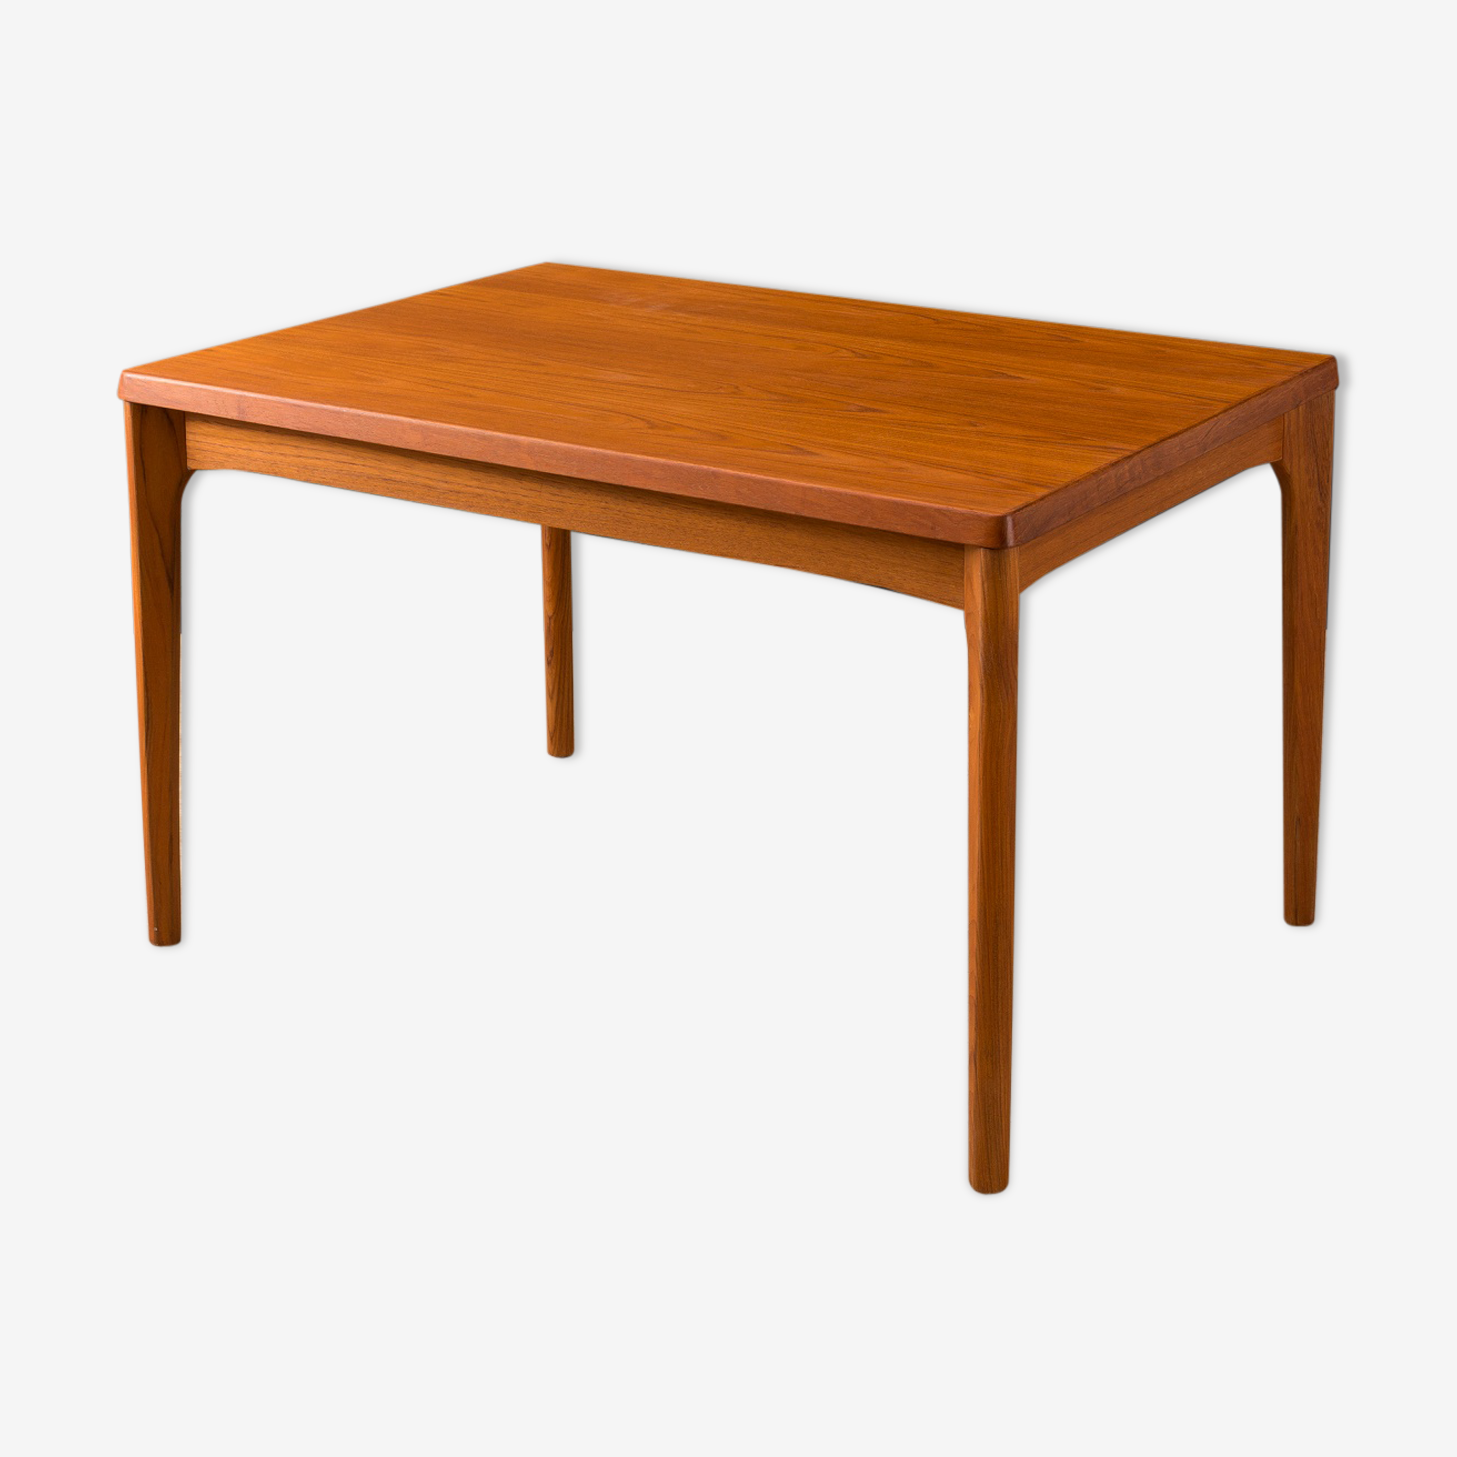 Teak dining table from the 1960s